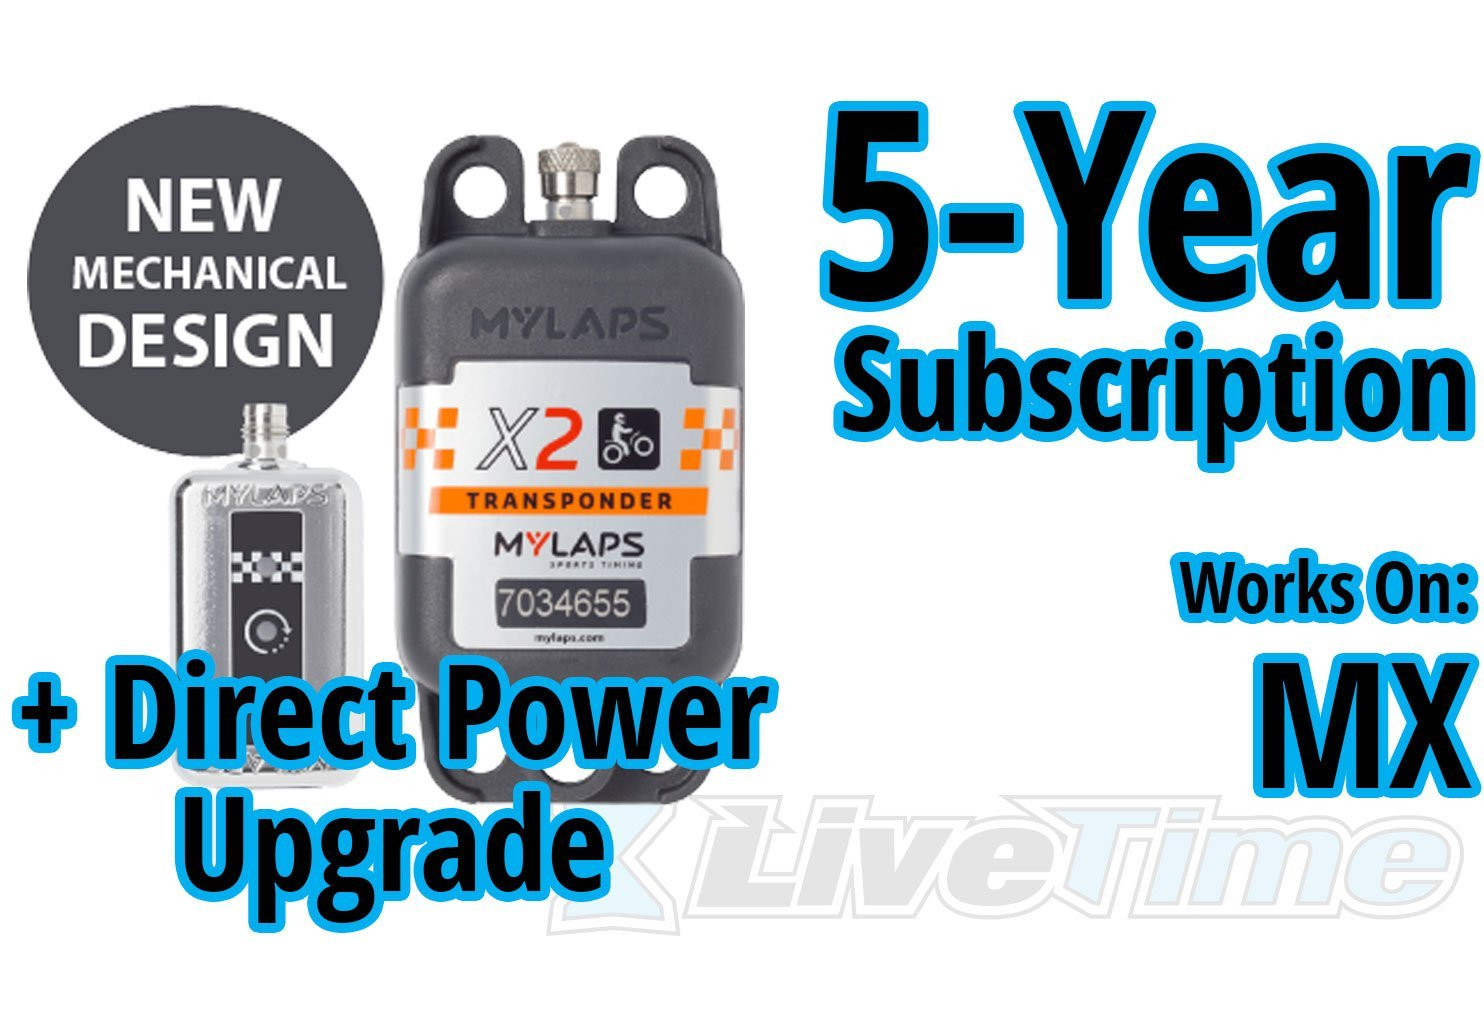 MyLaps X2 Transponder, Direct Power, for MX (motocross), includes 5-Year Subscription